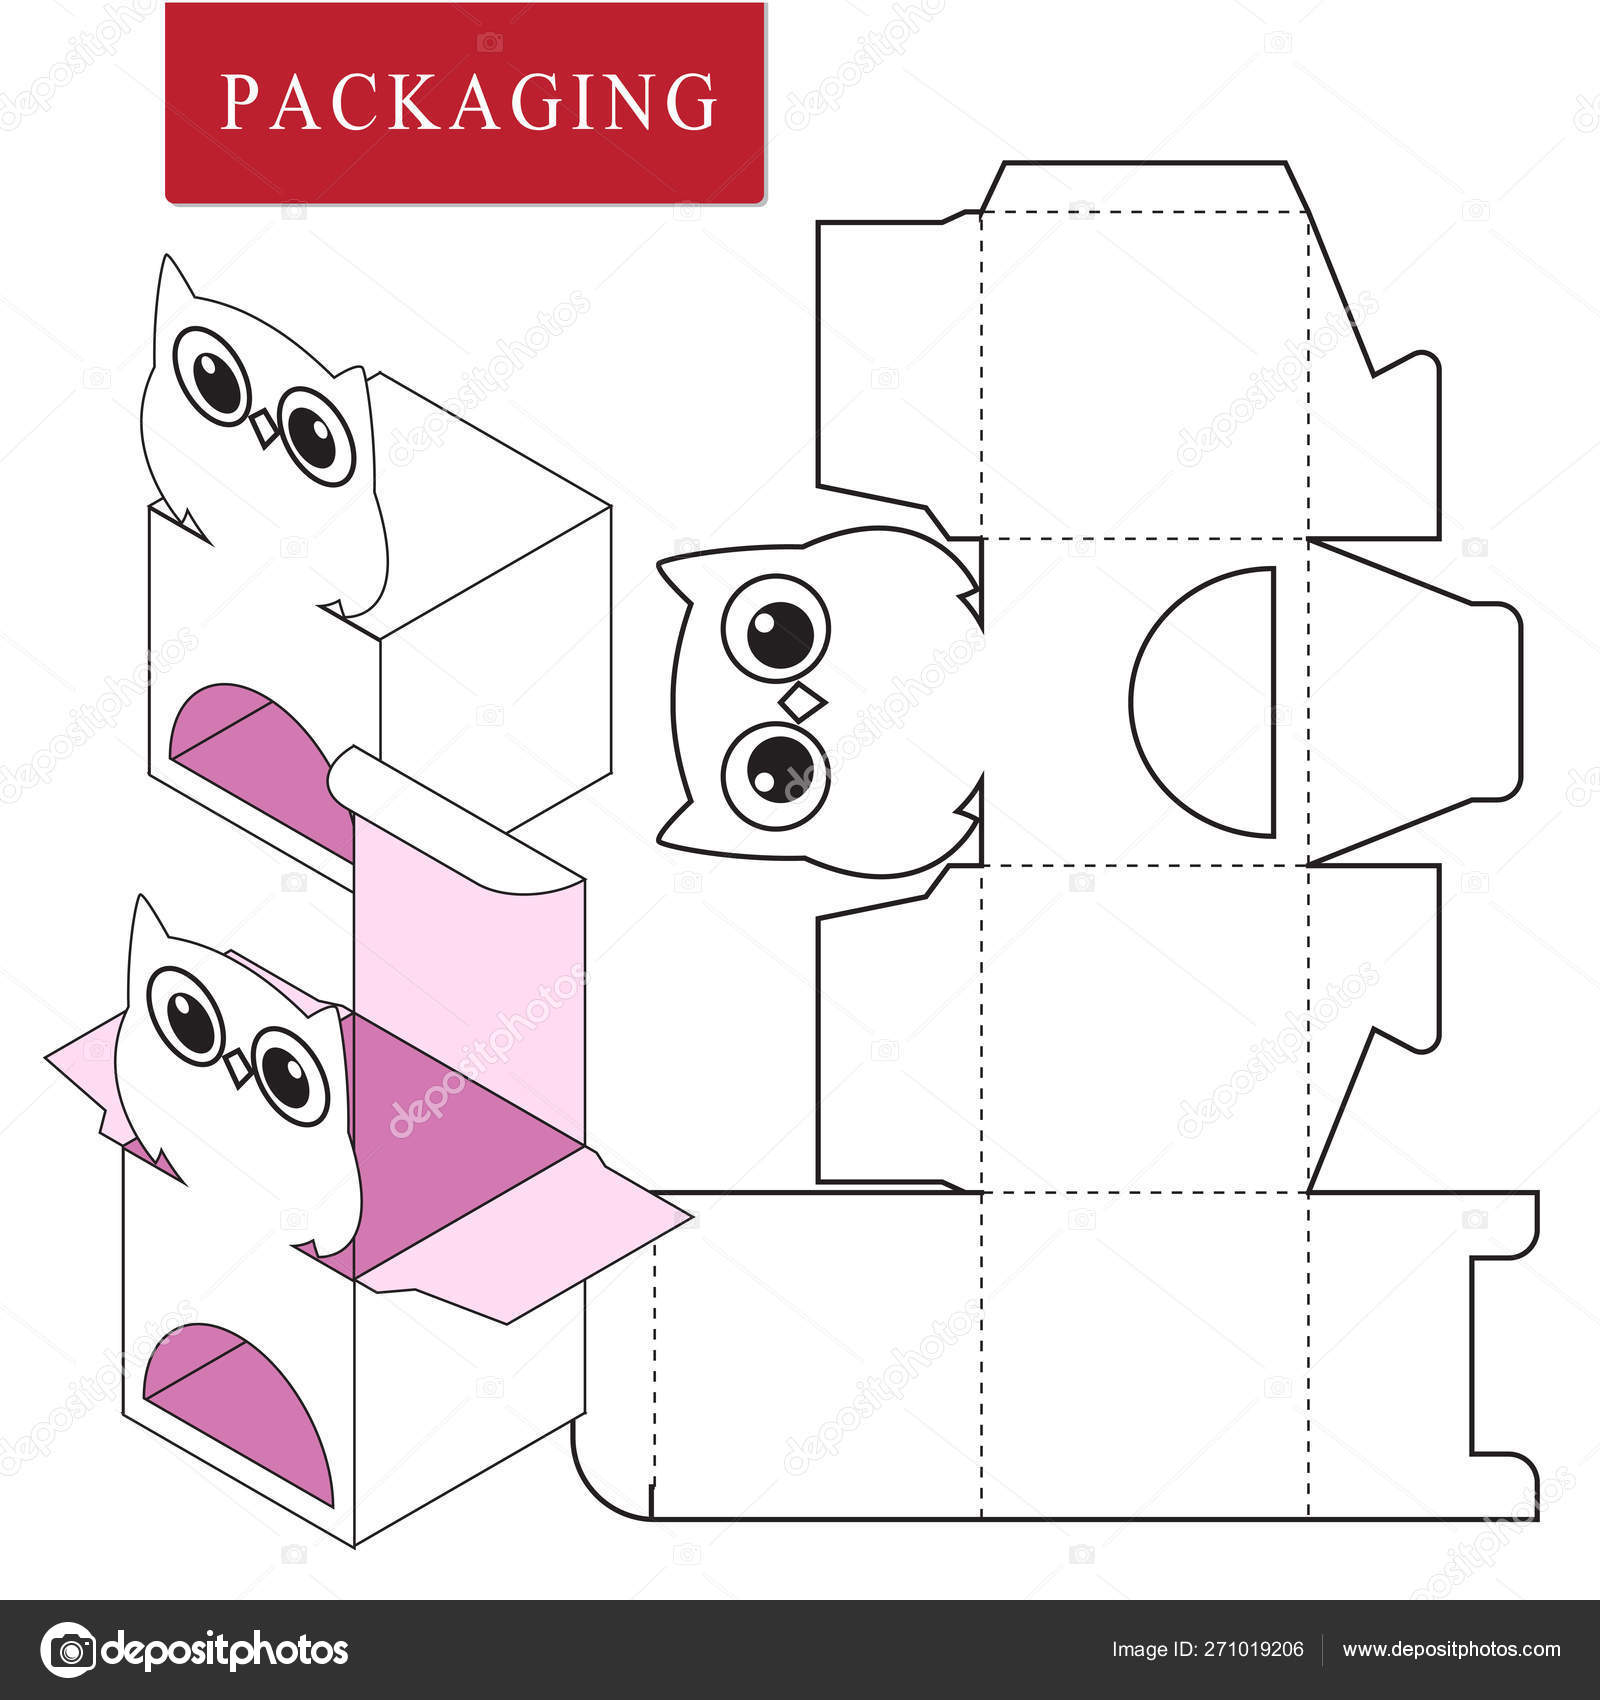 Packaging Design Vector Illustration Of Box Package Template